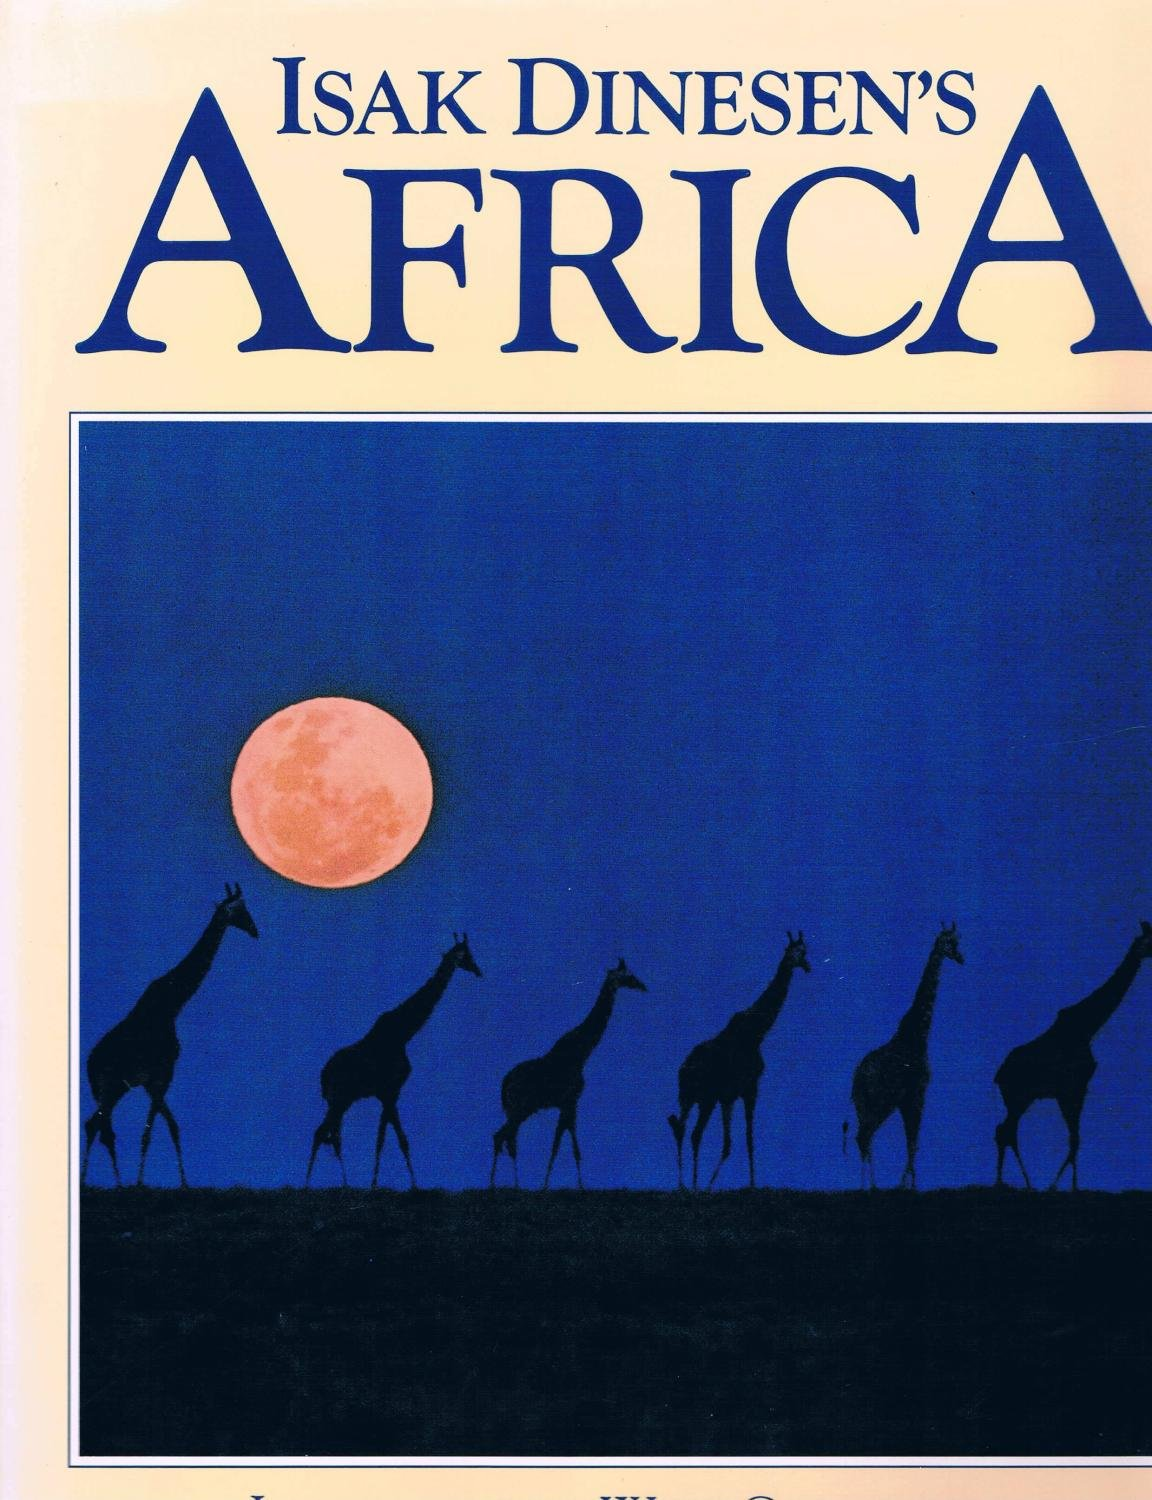 Isak Dinesen's Africa : Images of the Wild Continent from the Writer's Life and Words